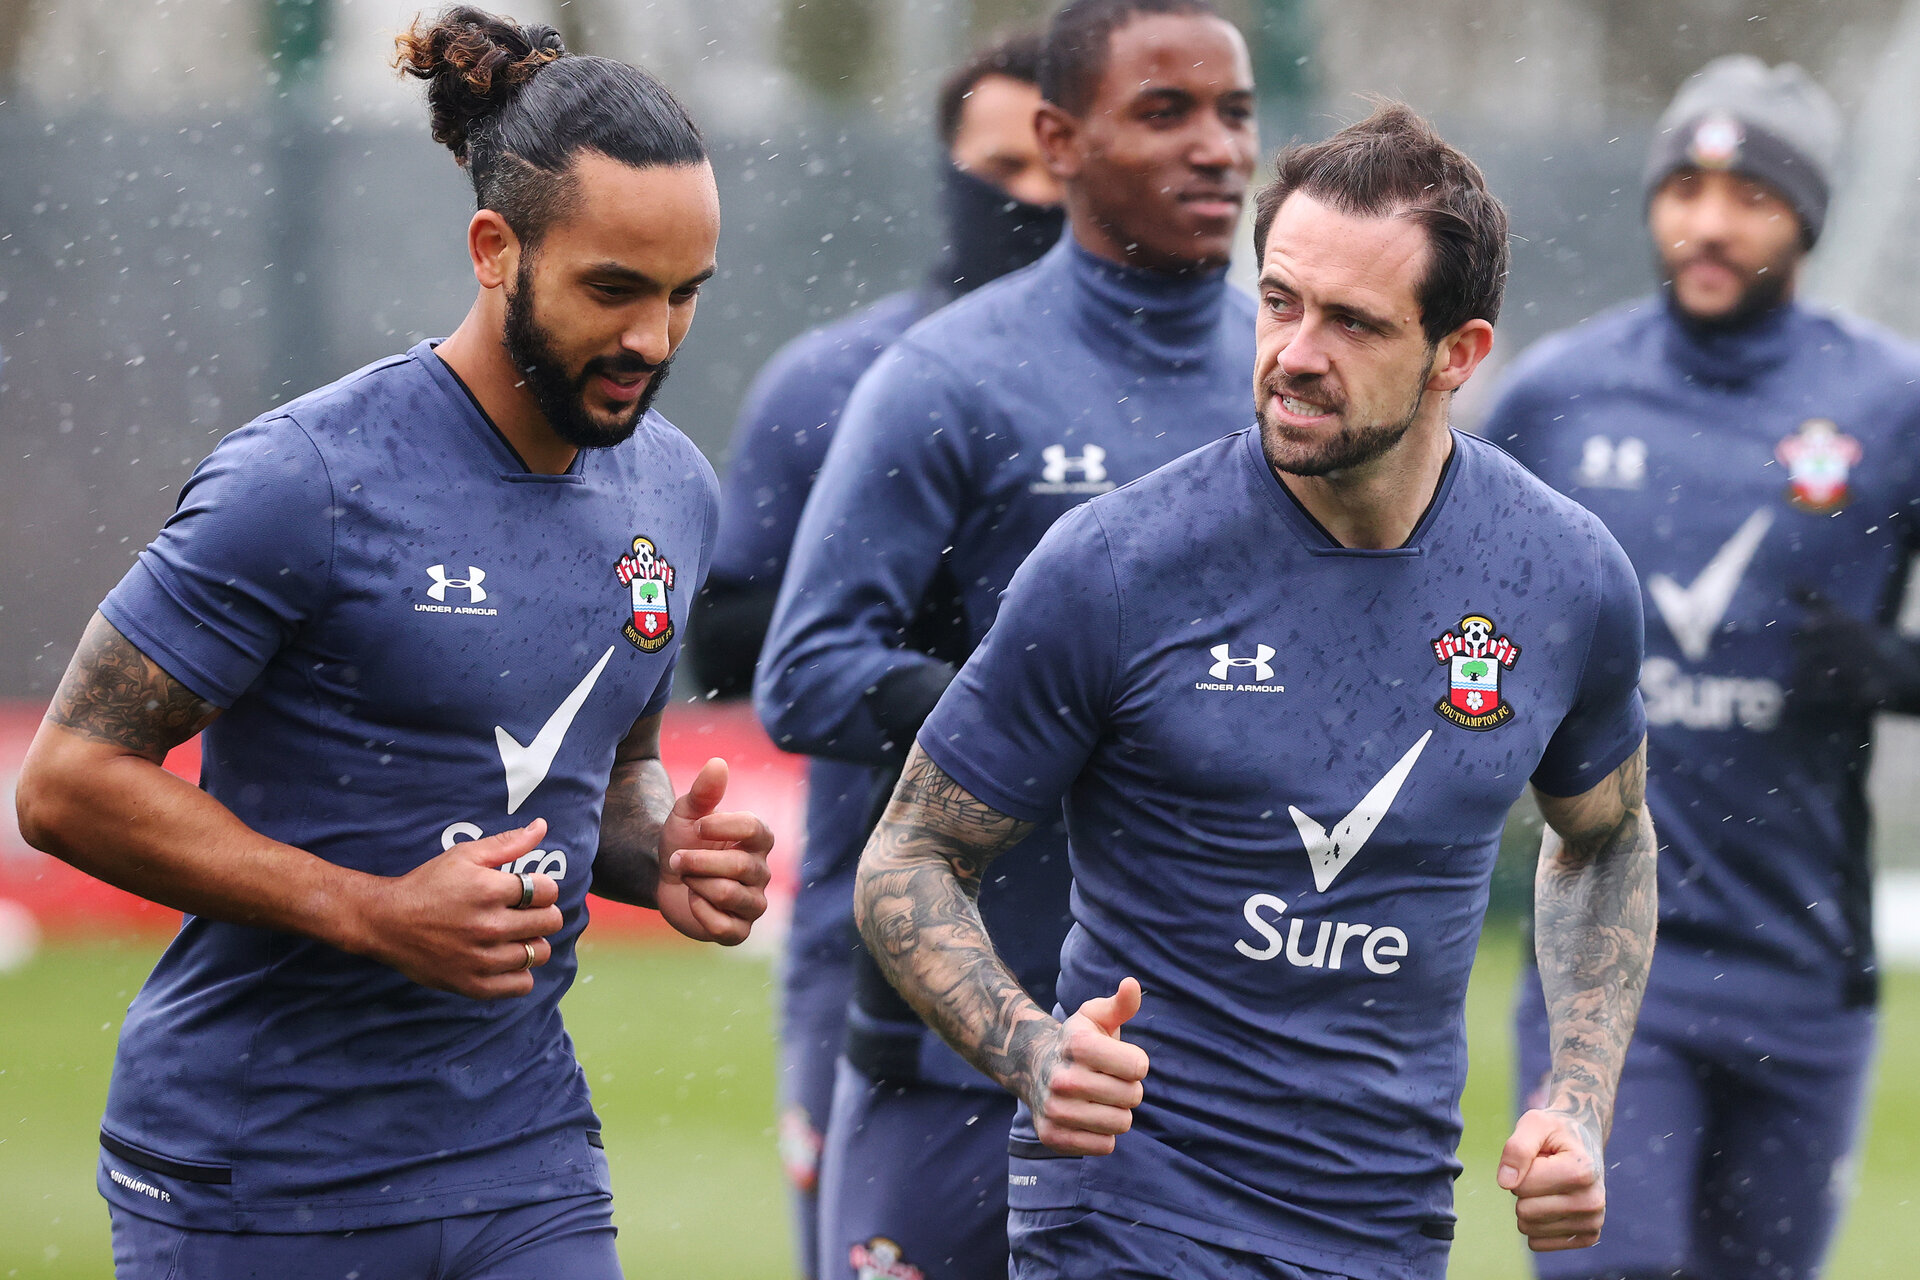 SOUTHAMPTON, ENGLAND - MARCH 26: Theo Walcott(L) and Danny Ings during a Southampton FC training session at the Staplewood Campus on March 26, 2021 in Southampton, England. (Photo by Matt Watson/Southampton FC via Getty Images)